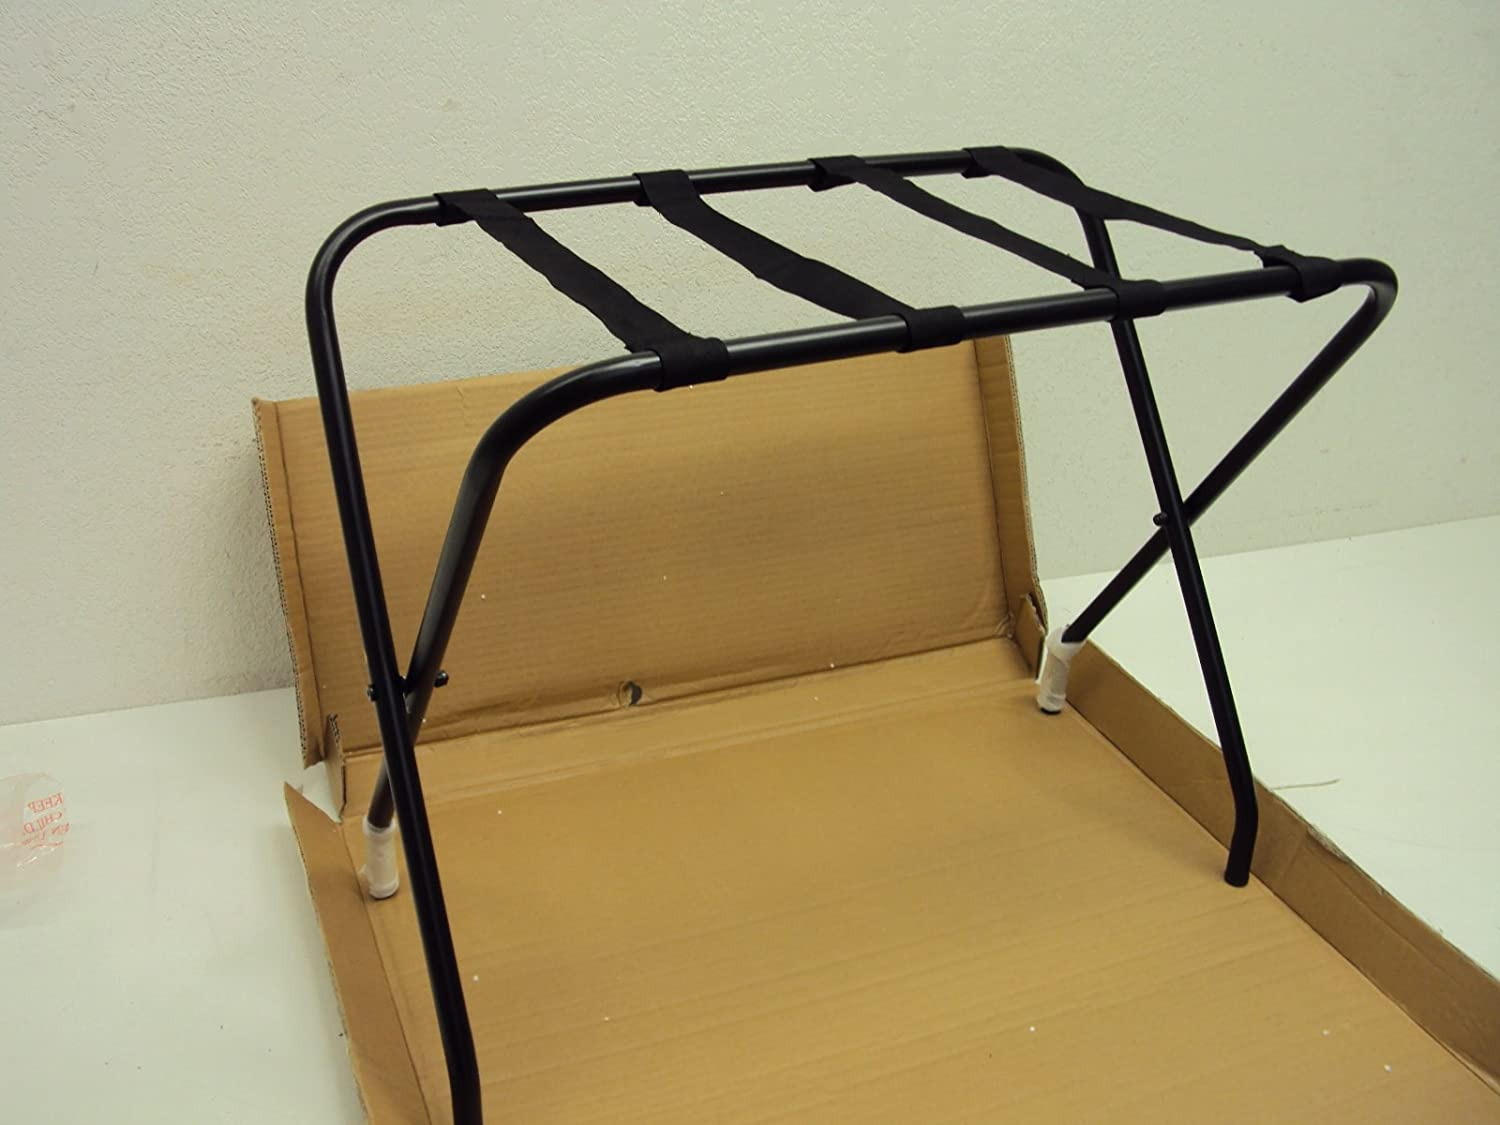 King's Brand Black Metal Folding Luggage Rack With Nylon Belt King' s Brand LRK159